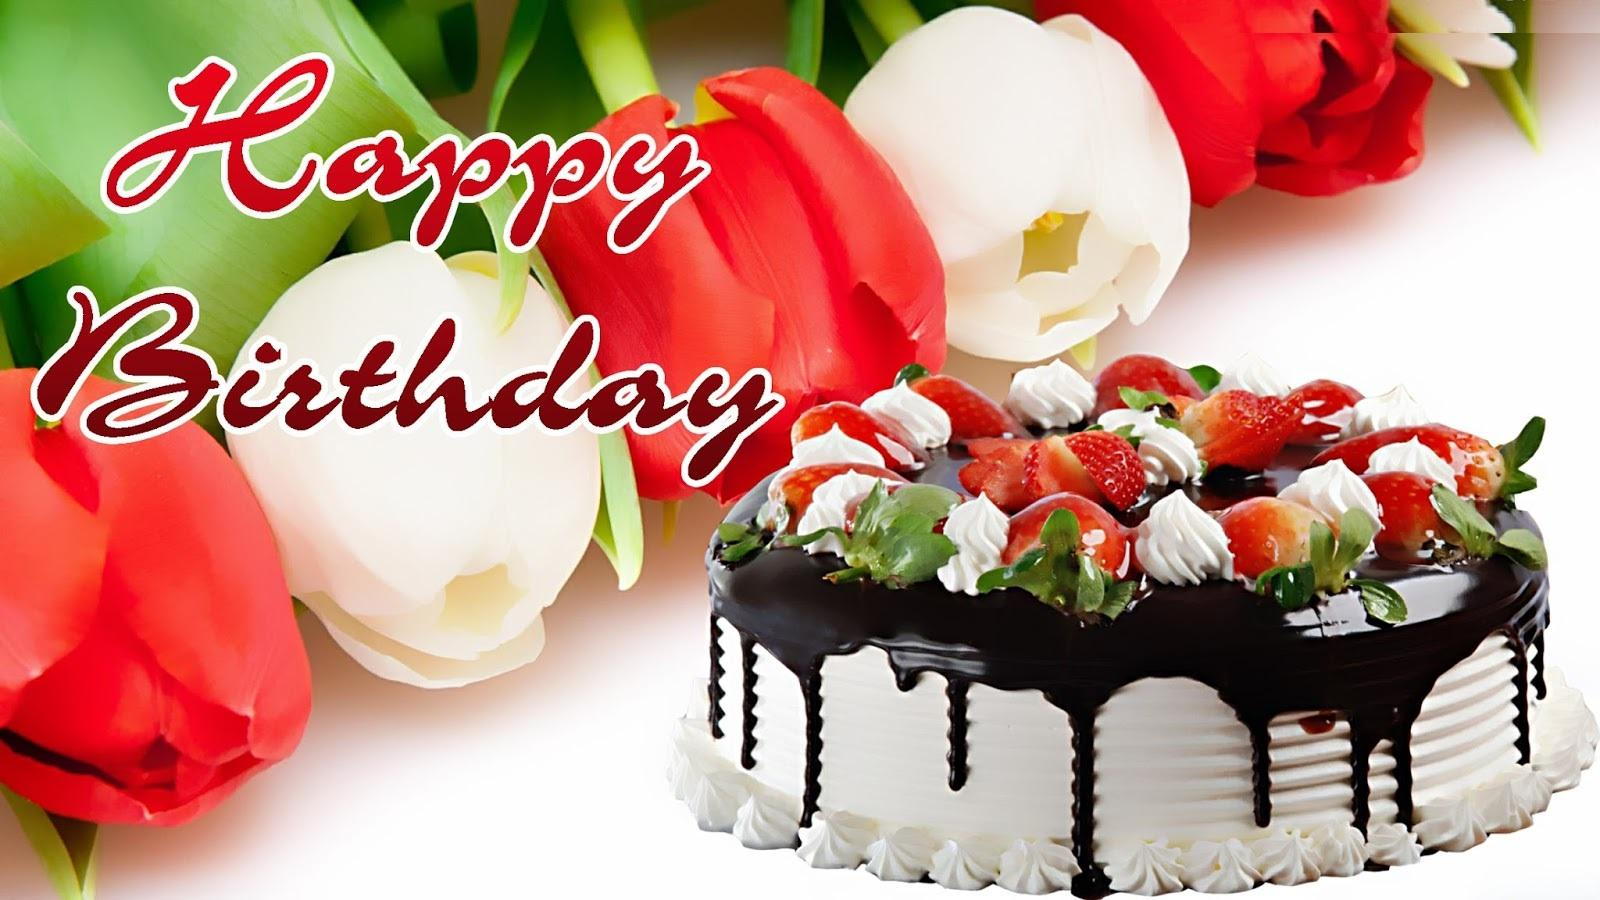 hd wallpapers for birthday wishes ; happy-birthday-images-26